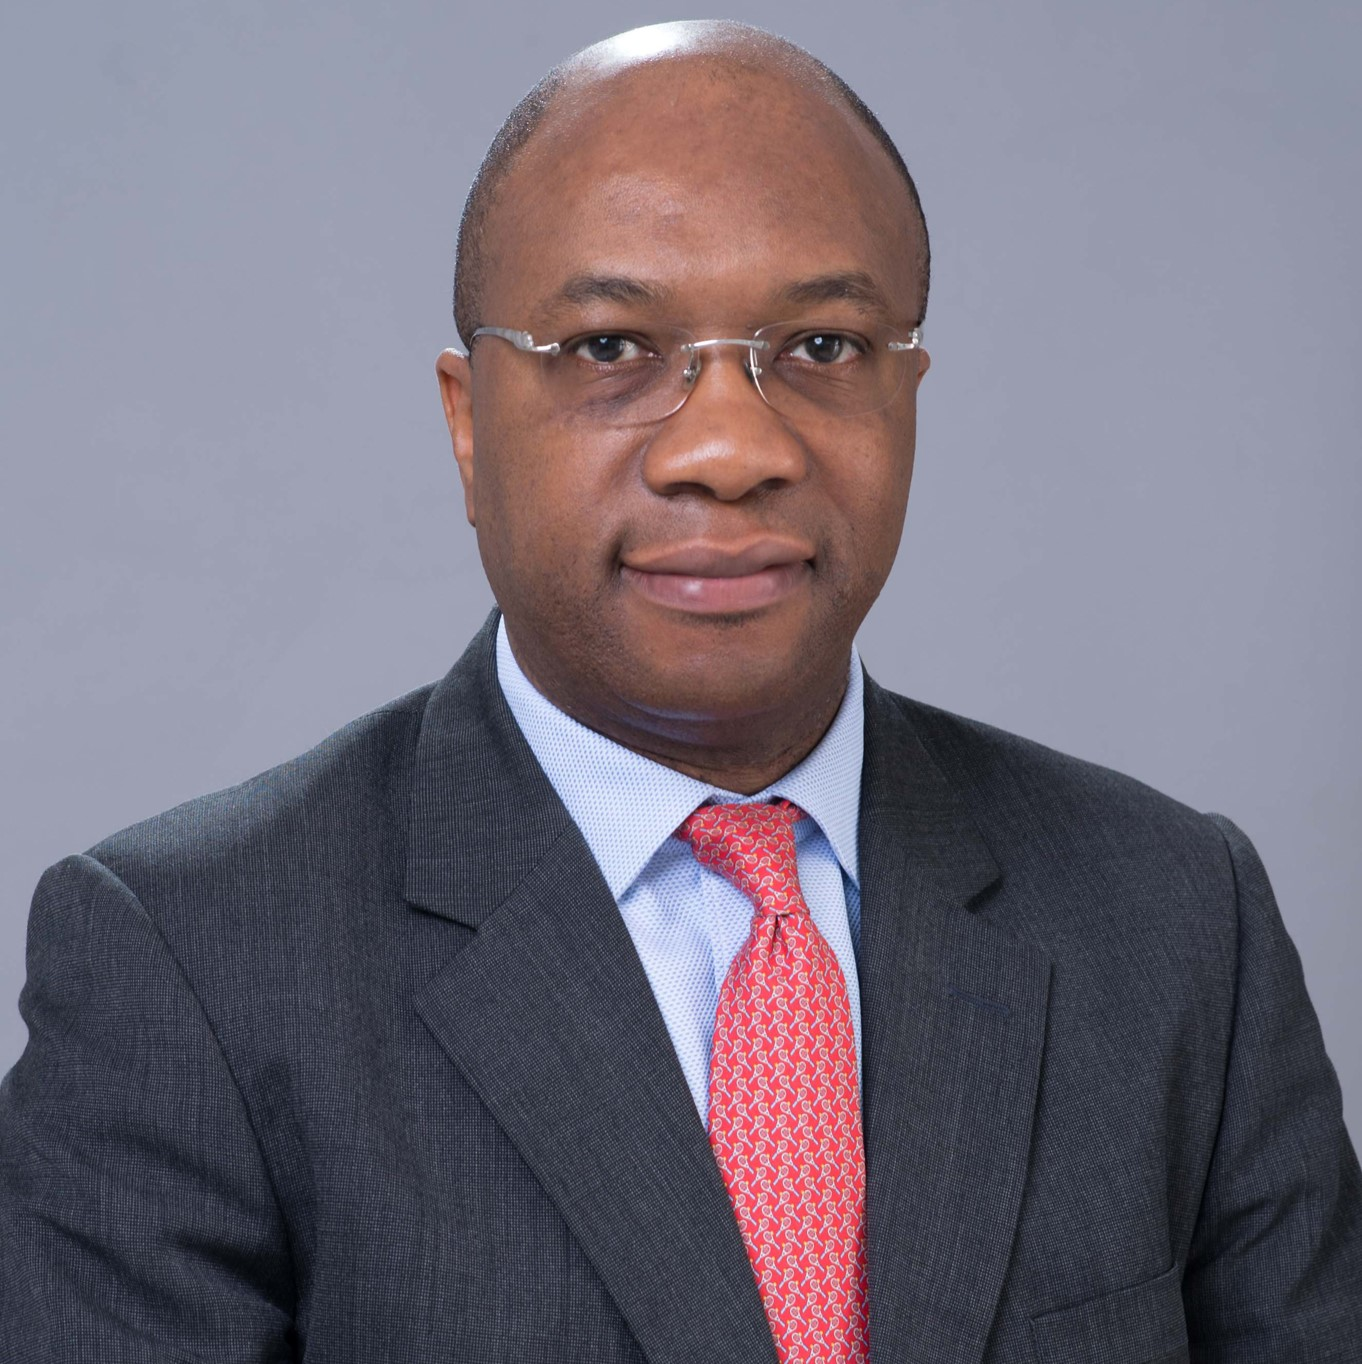 FBNQUEST CEO Harps On Building Nigeria's Infrastructure, Legacy